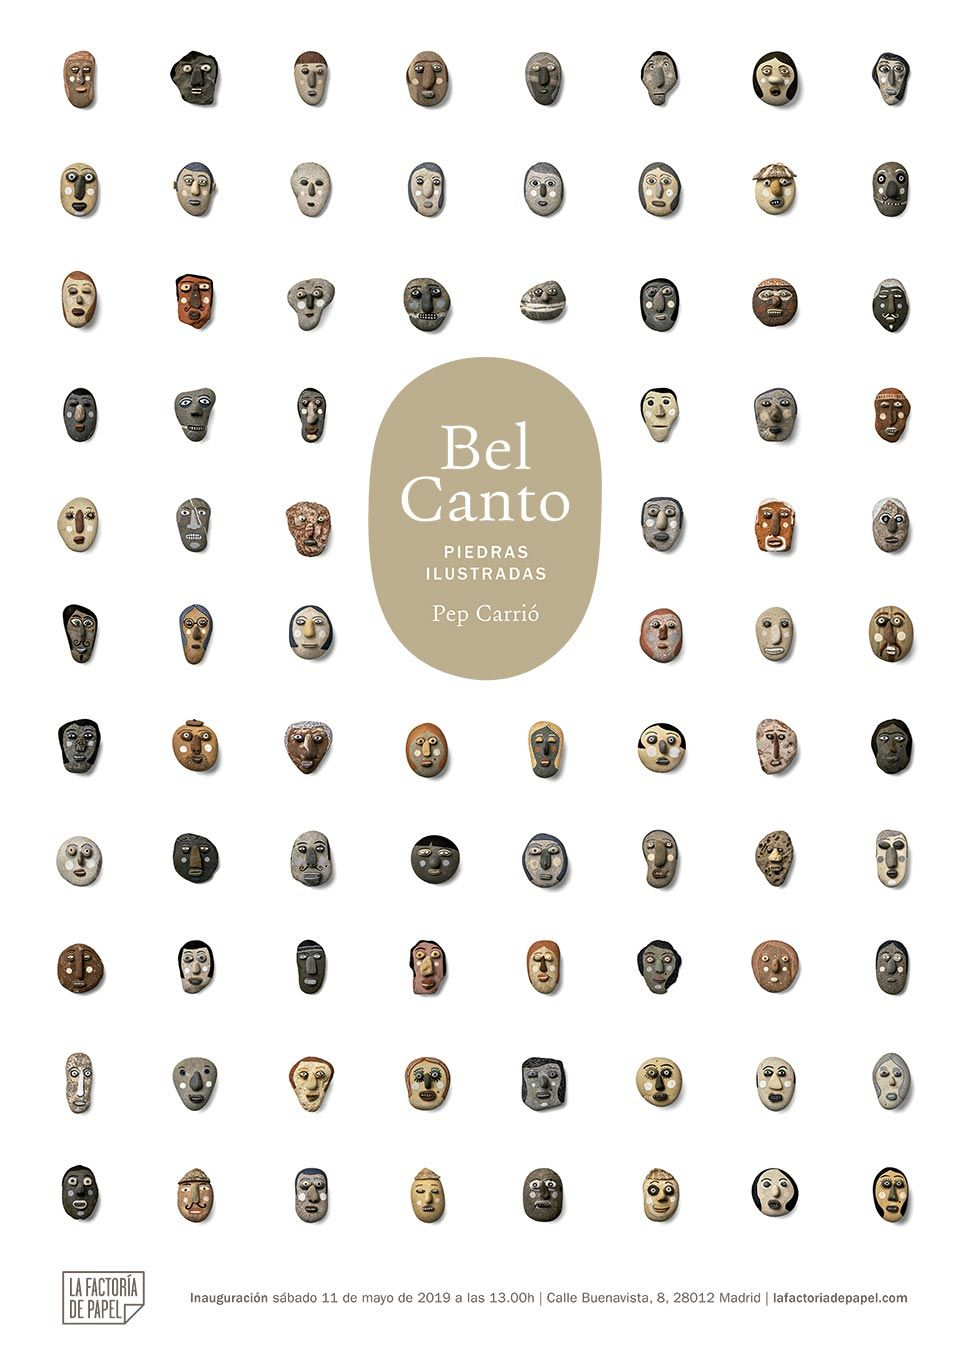 BEL CANTO Illustrated stones. Pep Carrió